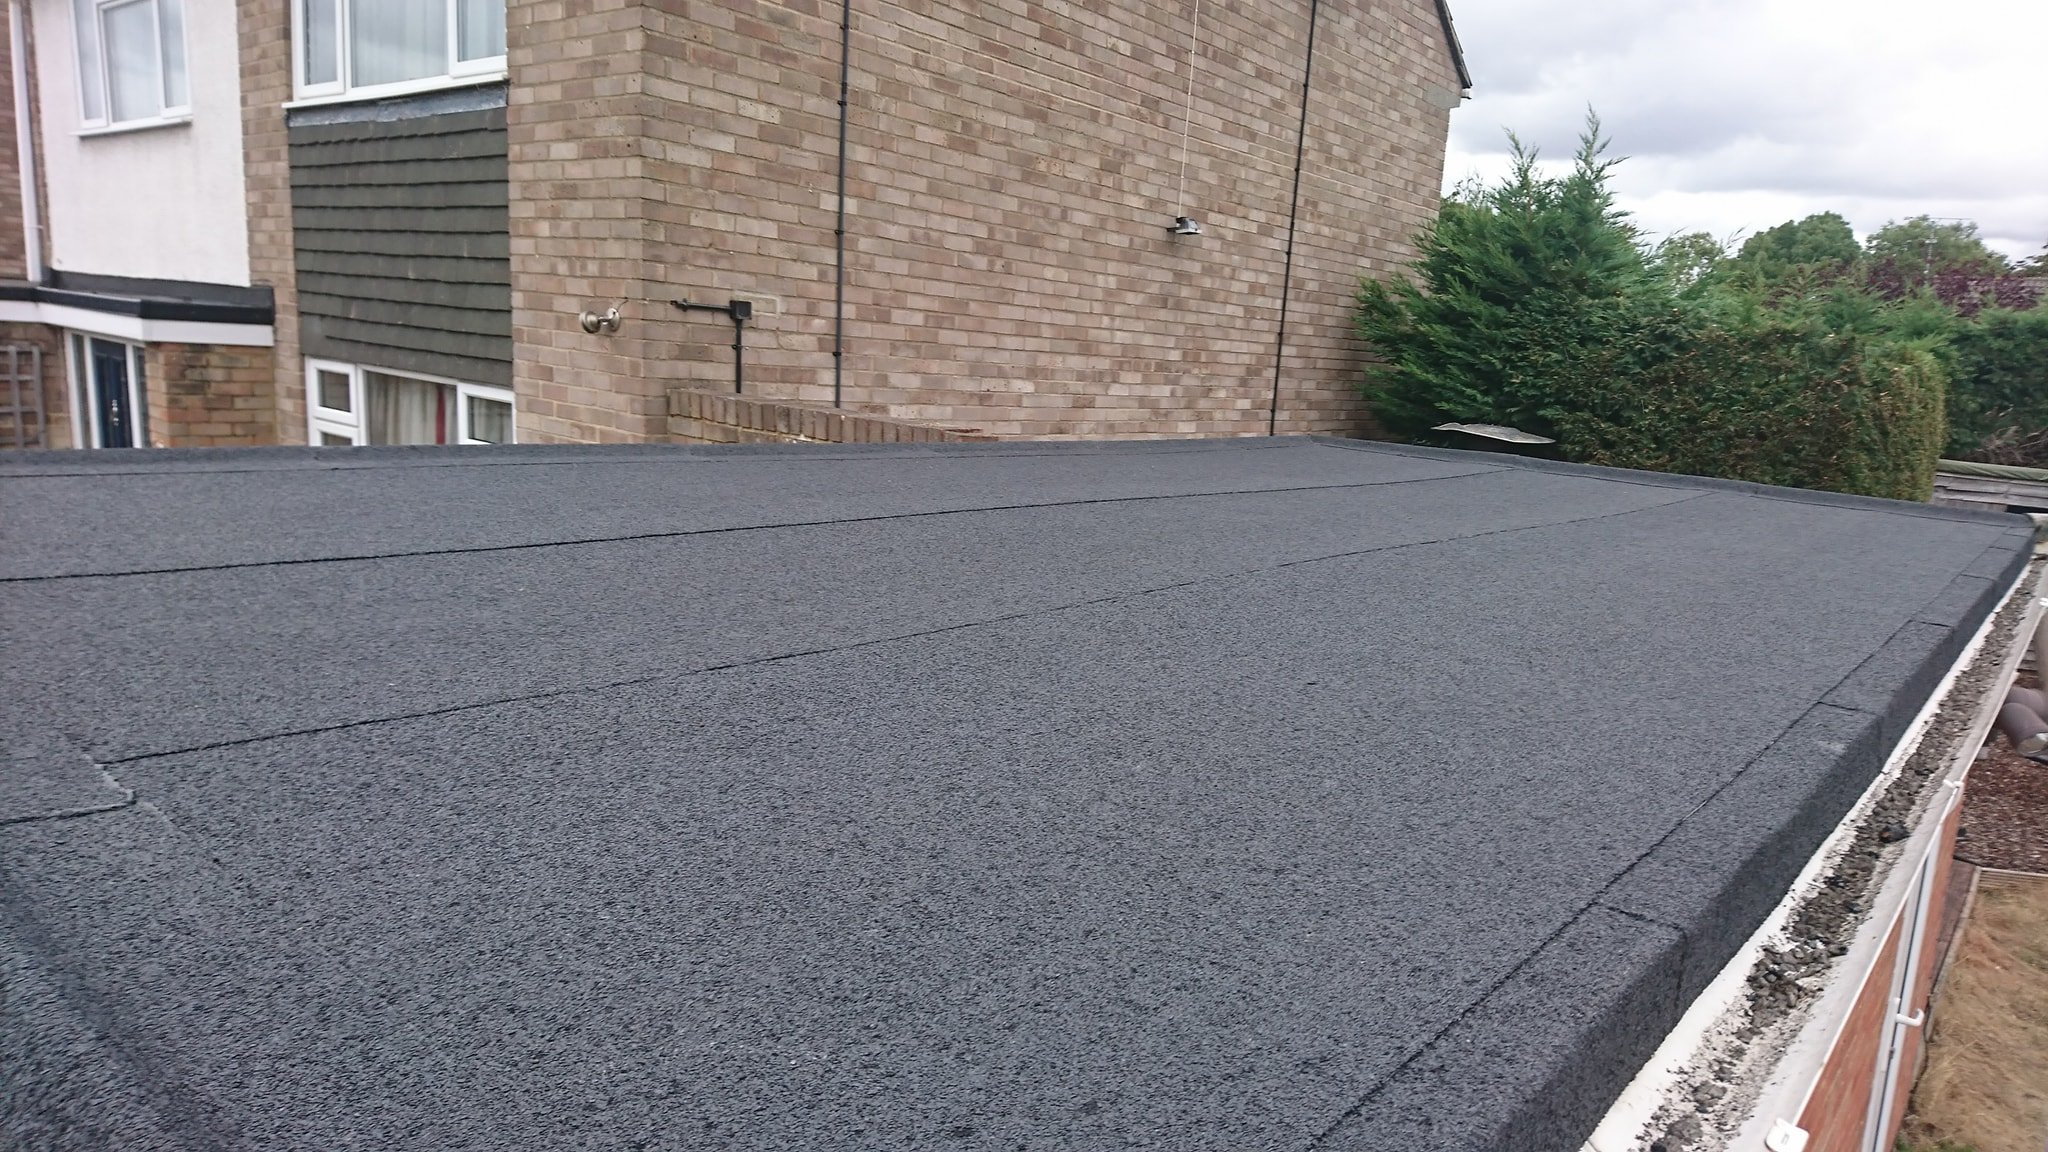 Flat Roofers Reading - Flat Roofers Berkshire - L Hill Roofing Ltd